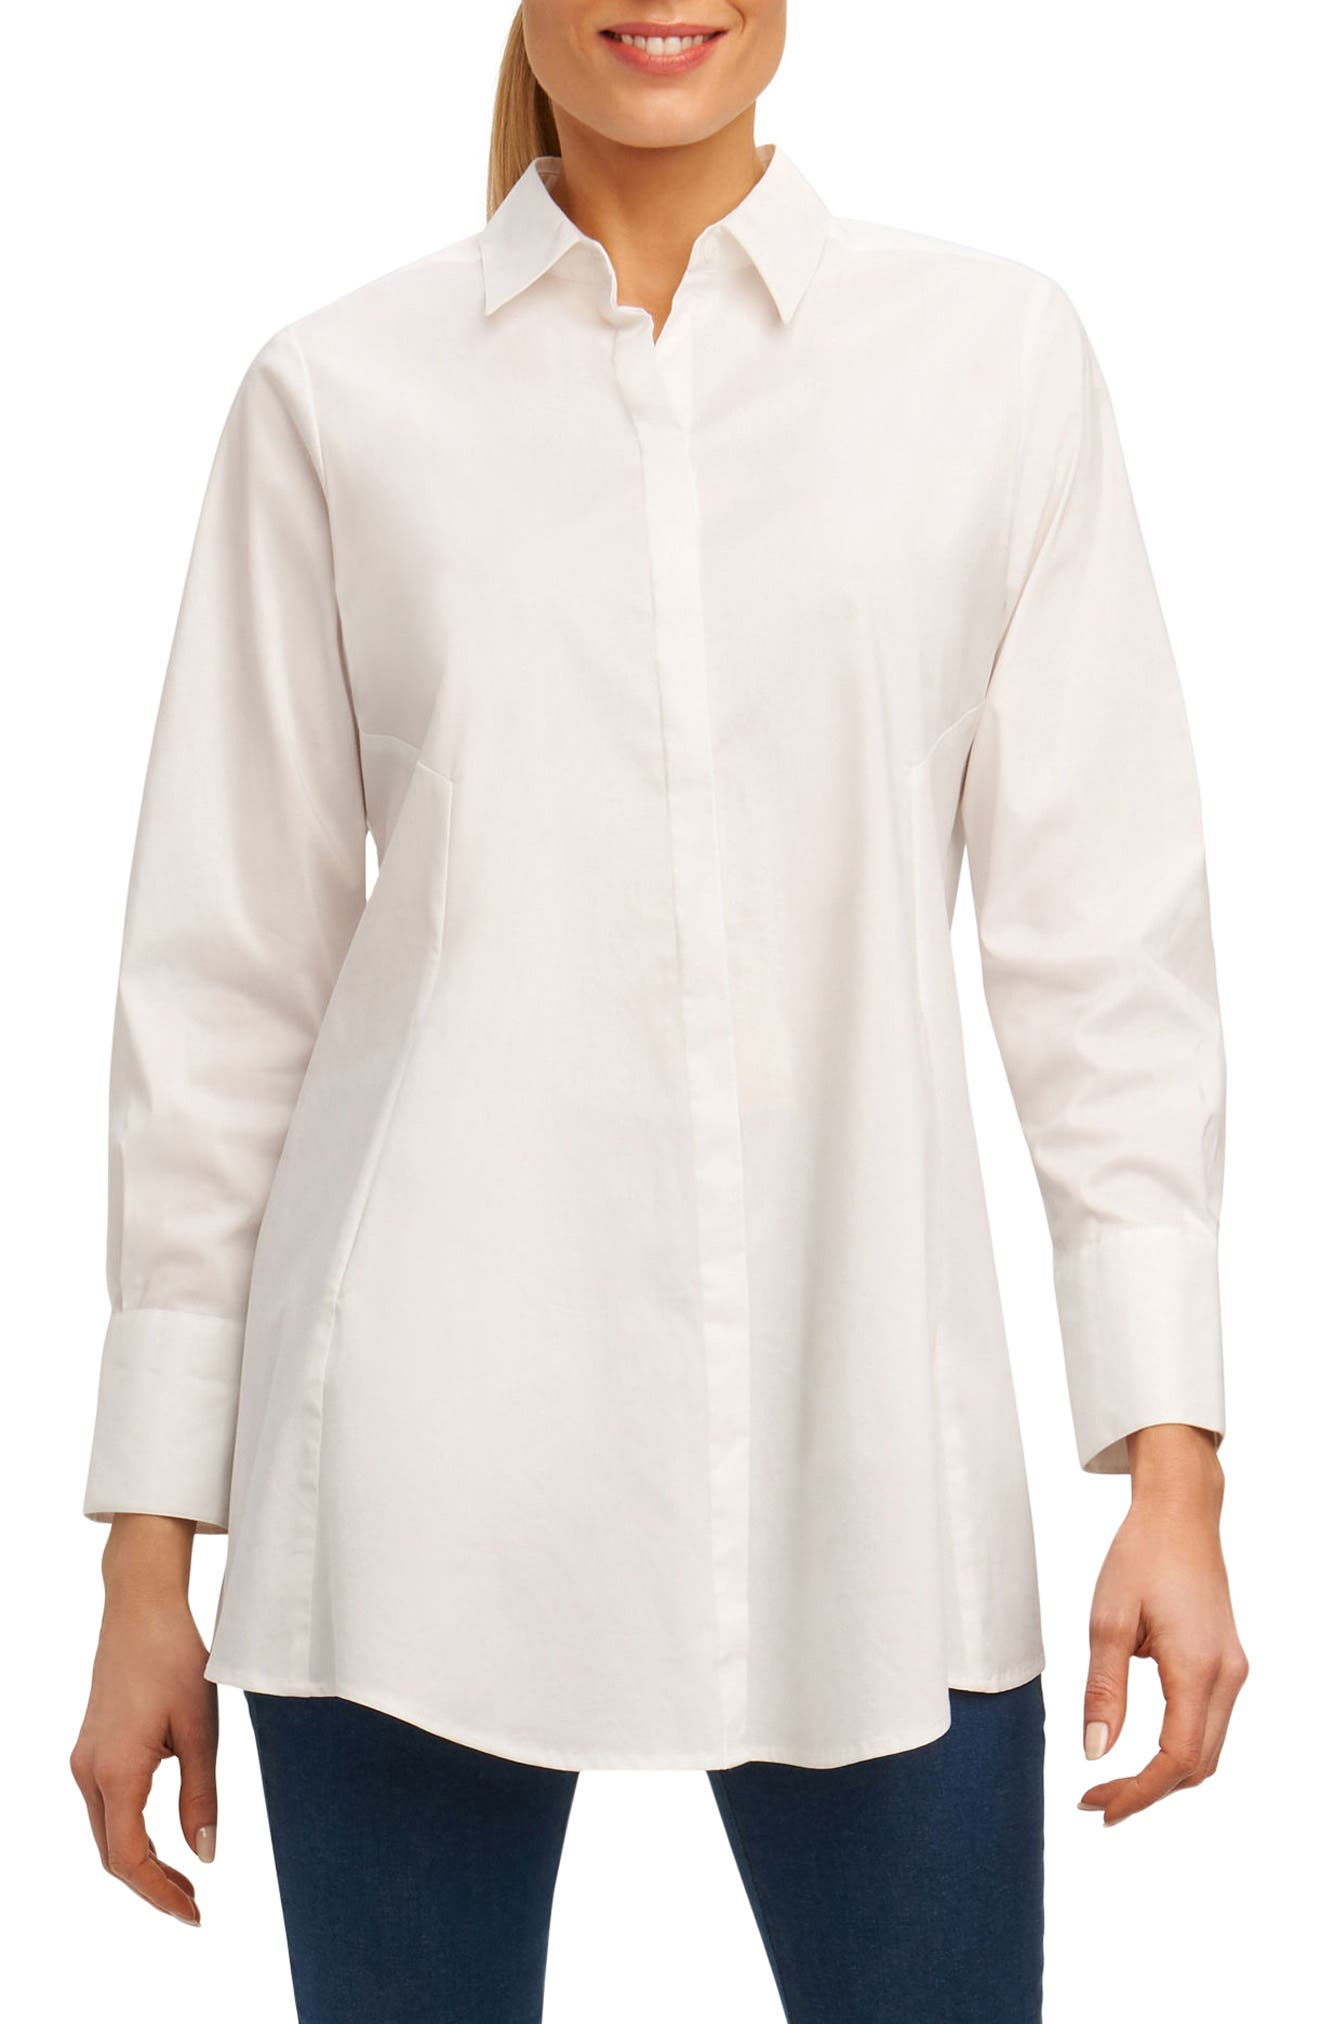 Cici Stretch Tunic Shirt,                         Main,                         color, 100